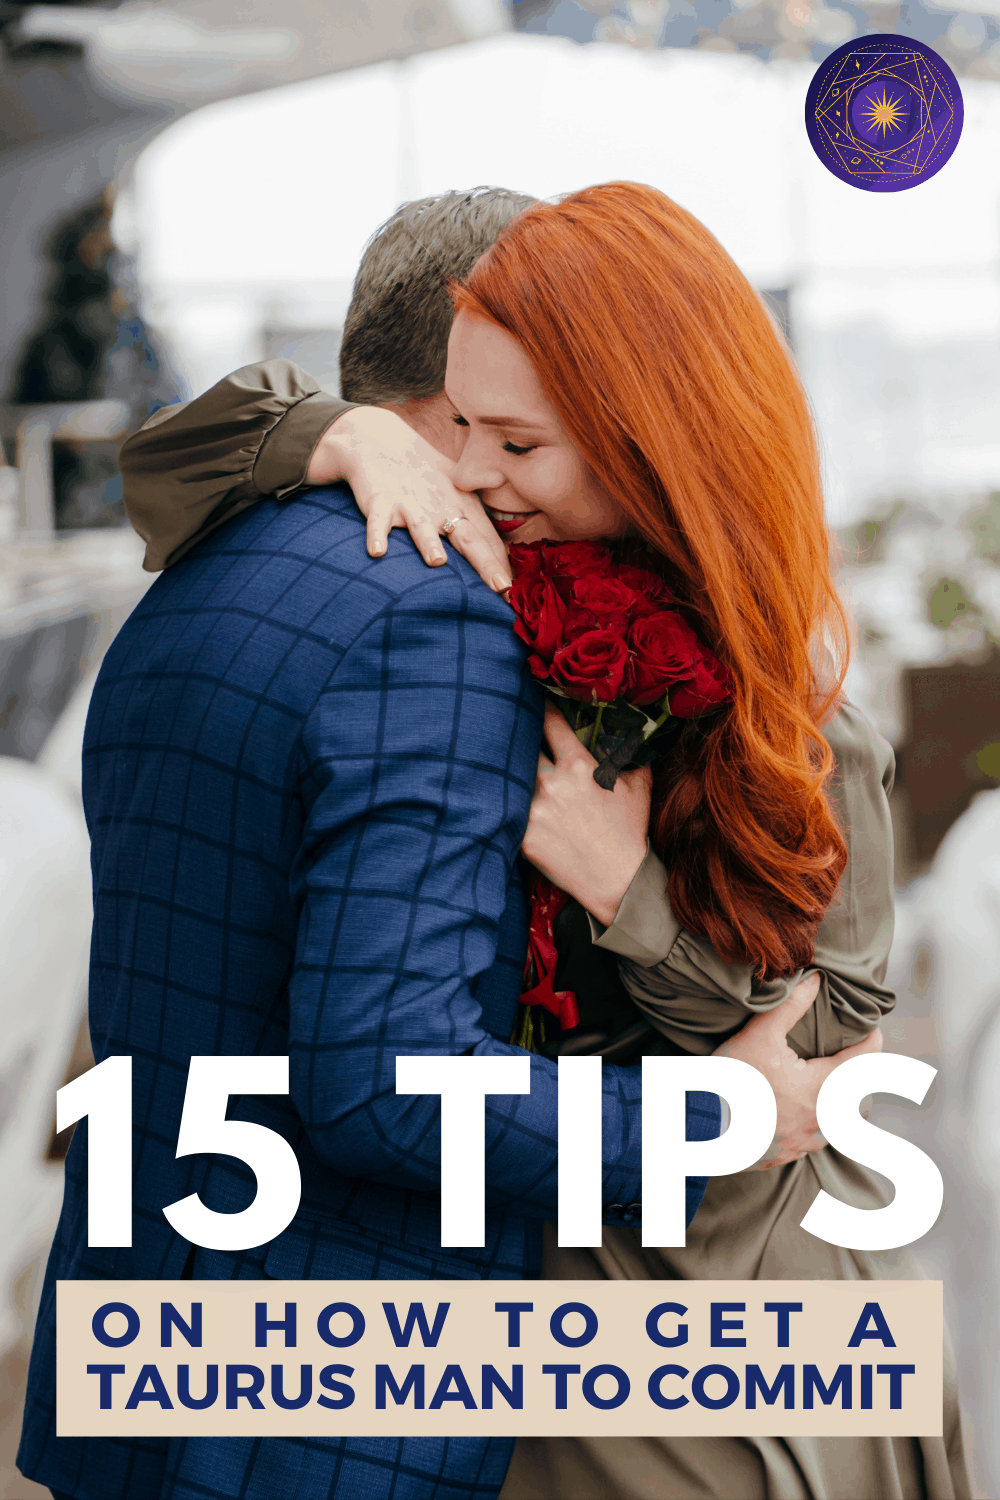 15 Tips On How to Get a Taurus Man to Commit